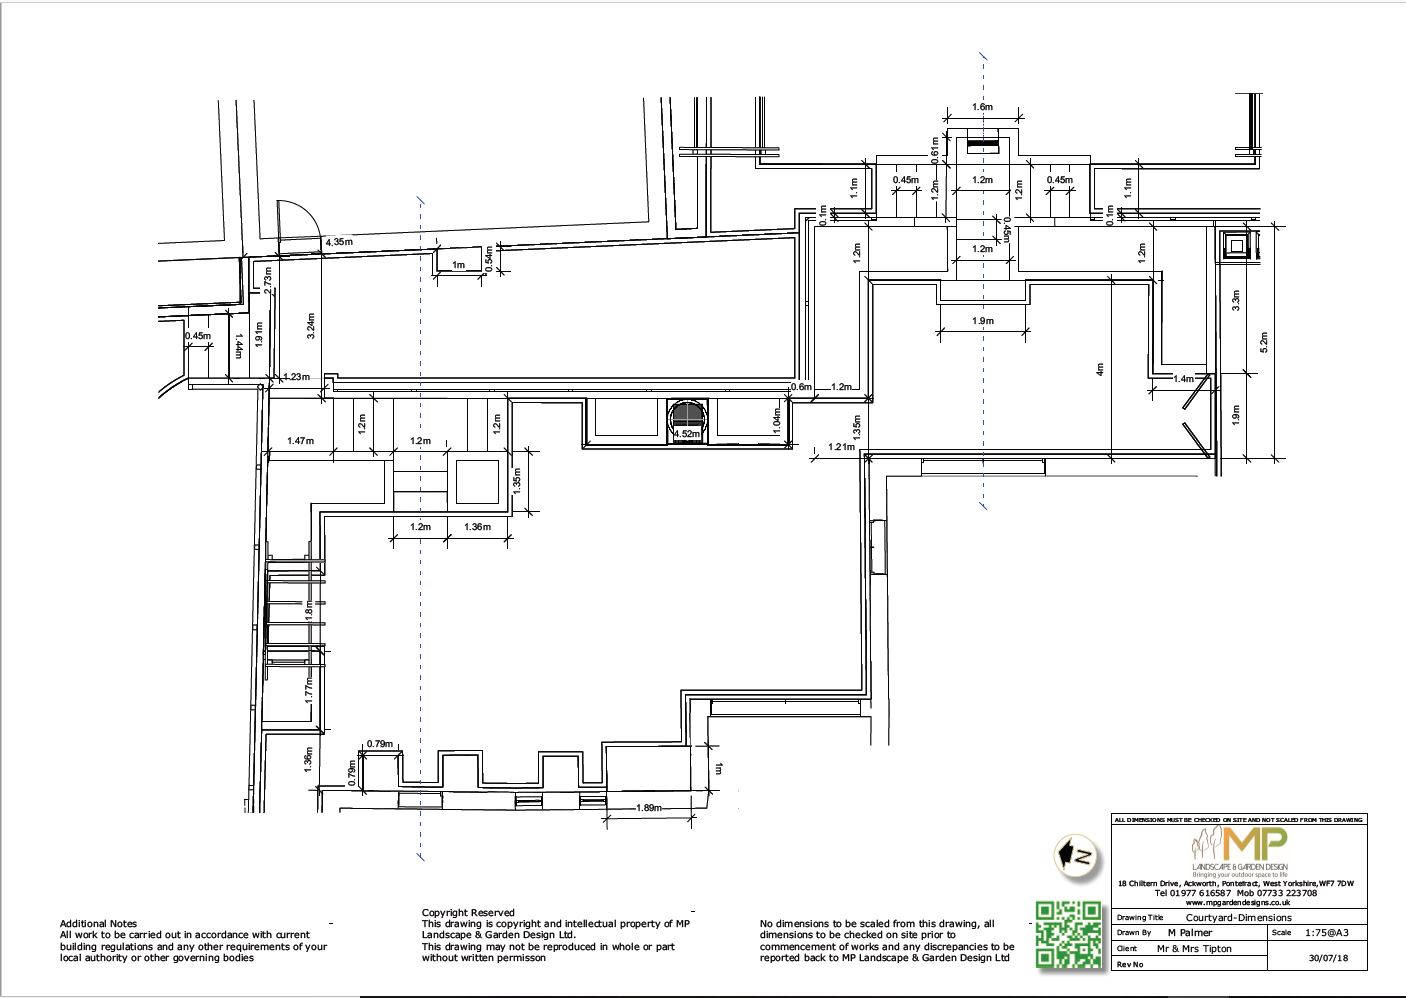 Courtyard layout dimensions plans  for a property in Castleford.